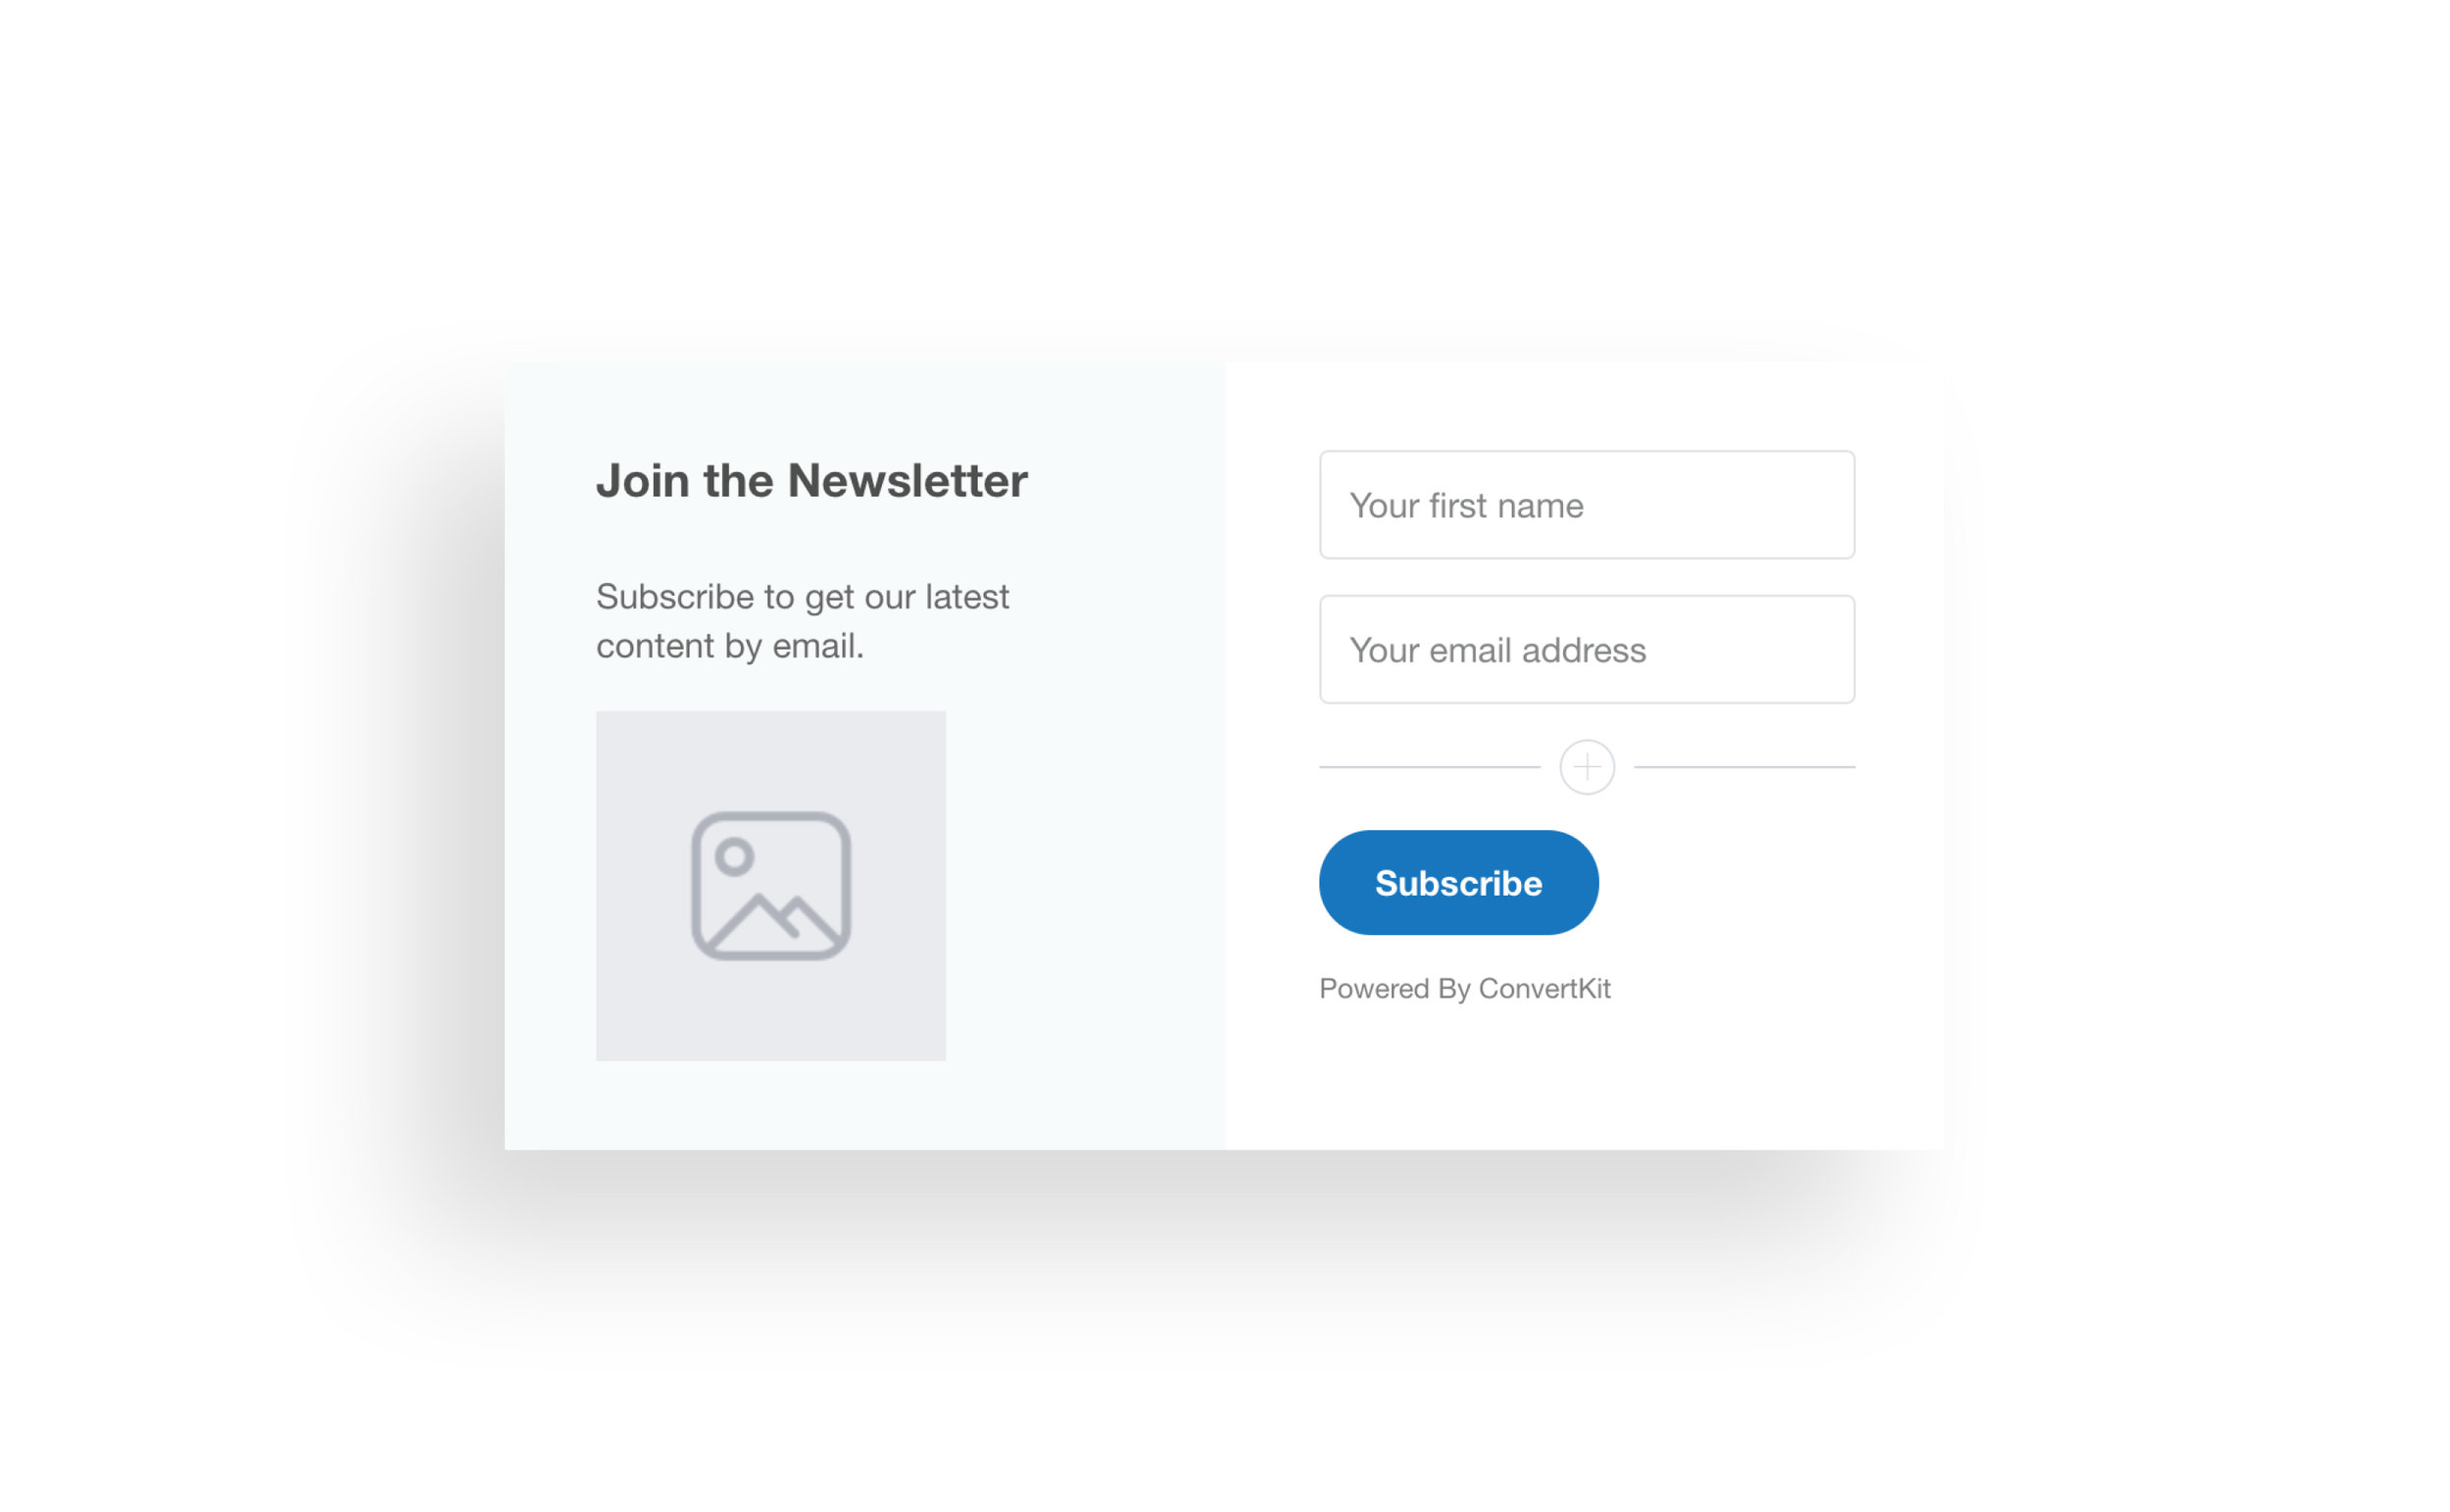 how-to-2x-your-conversion-rate-with-buttons-modal-form.jpg